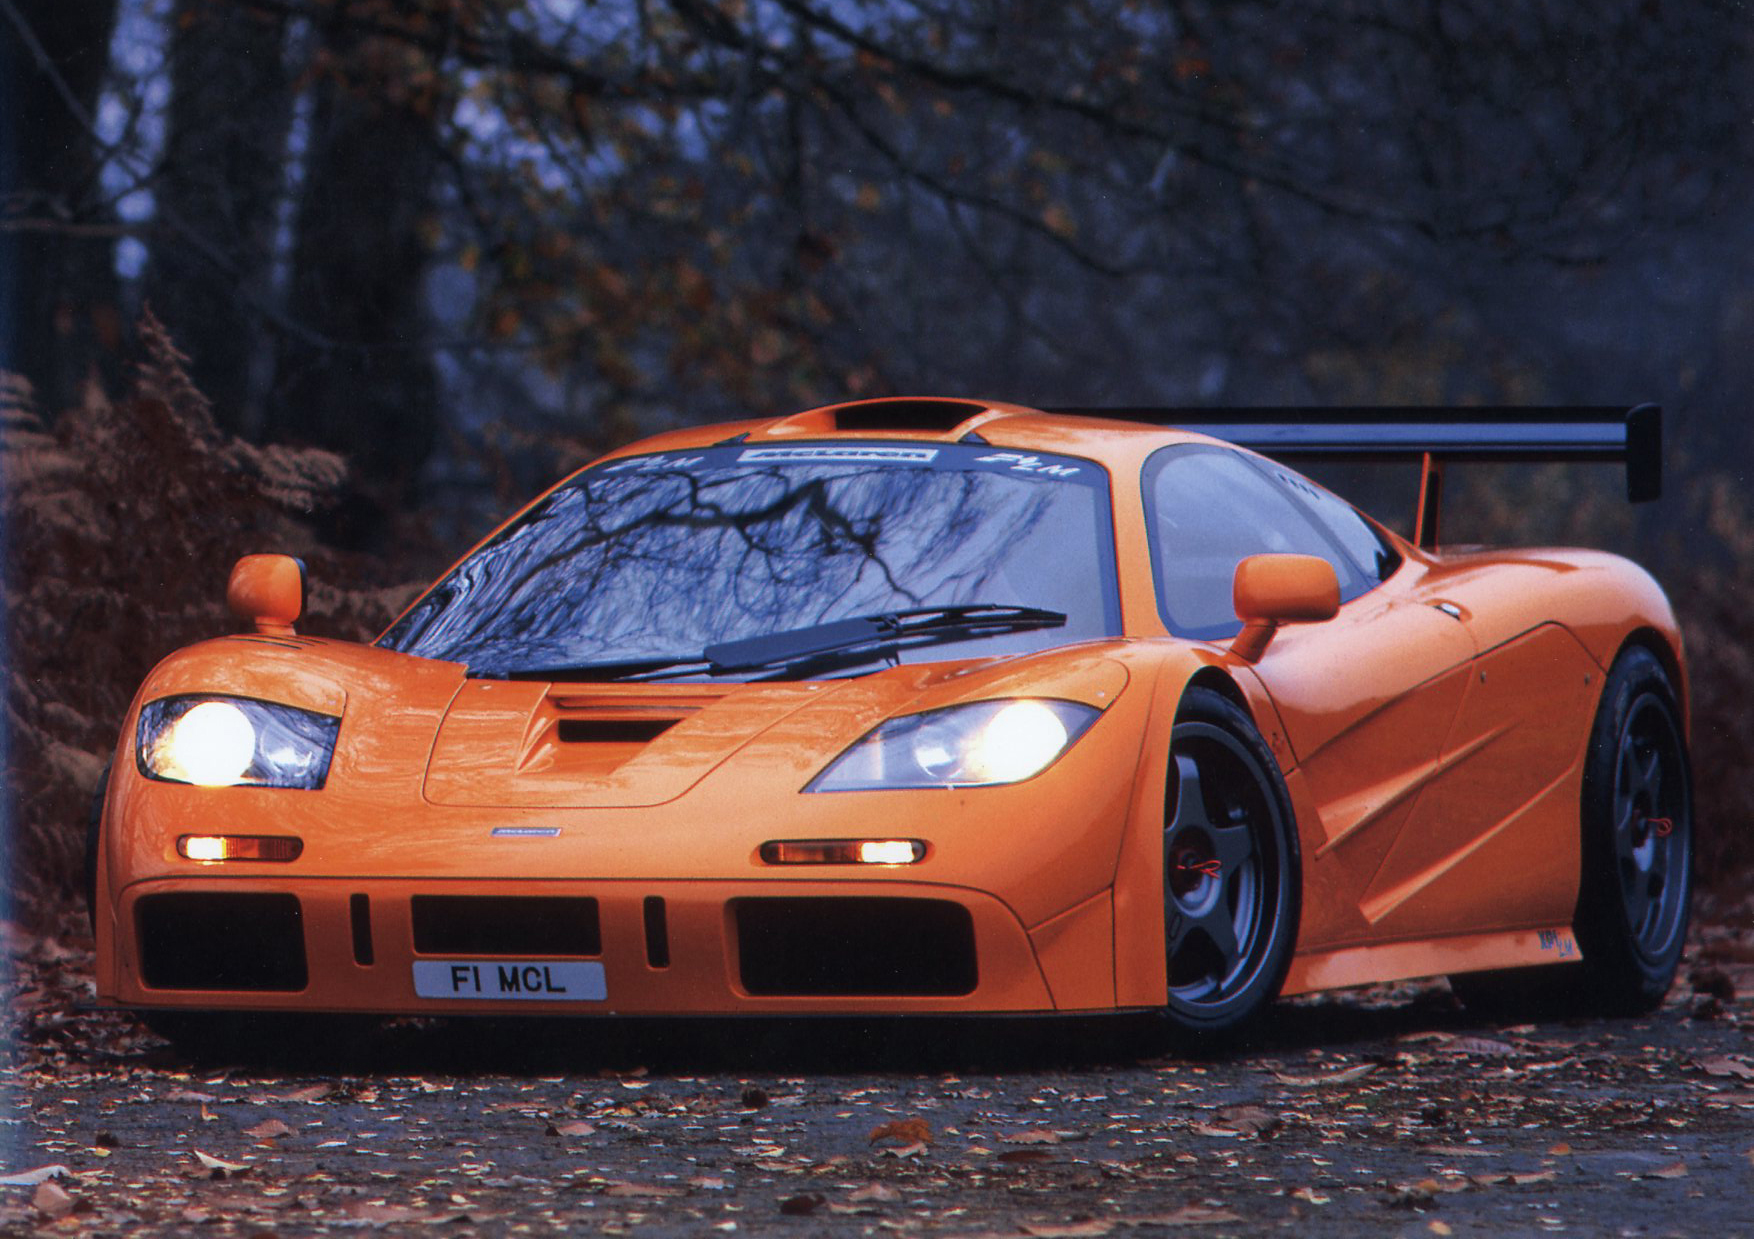 Mclaren f1 cars Wallpapers Desktop Download Wallpaper